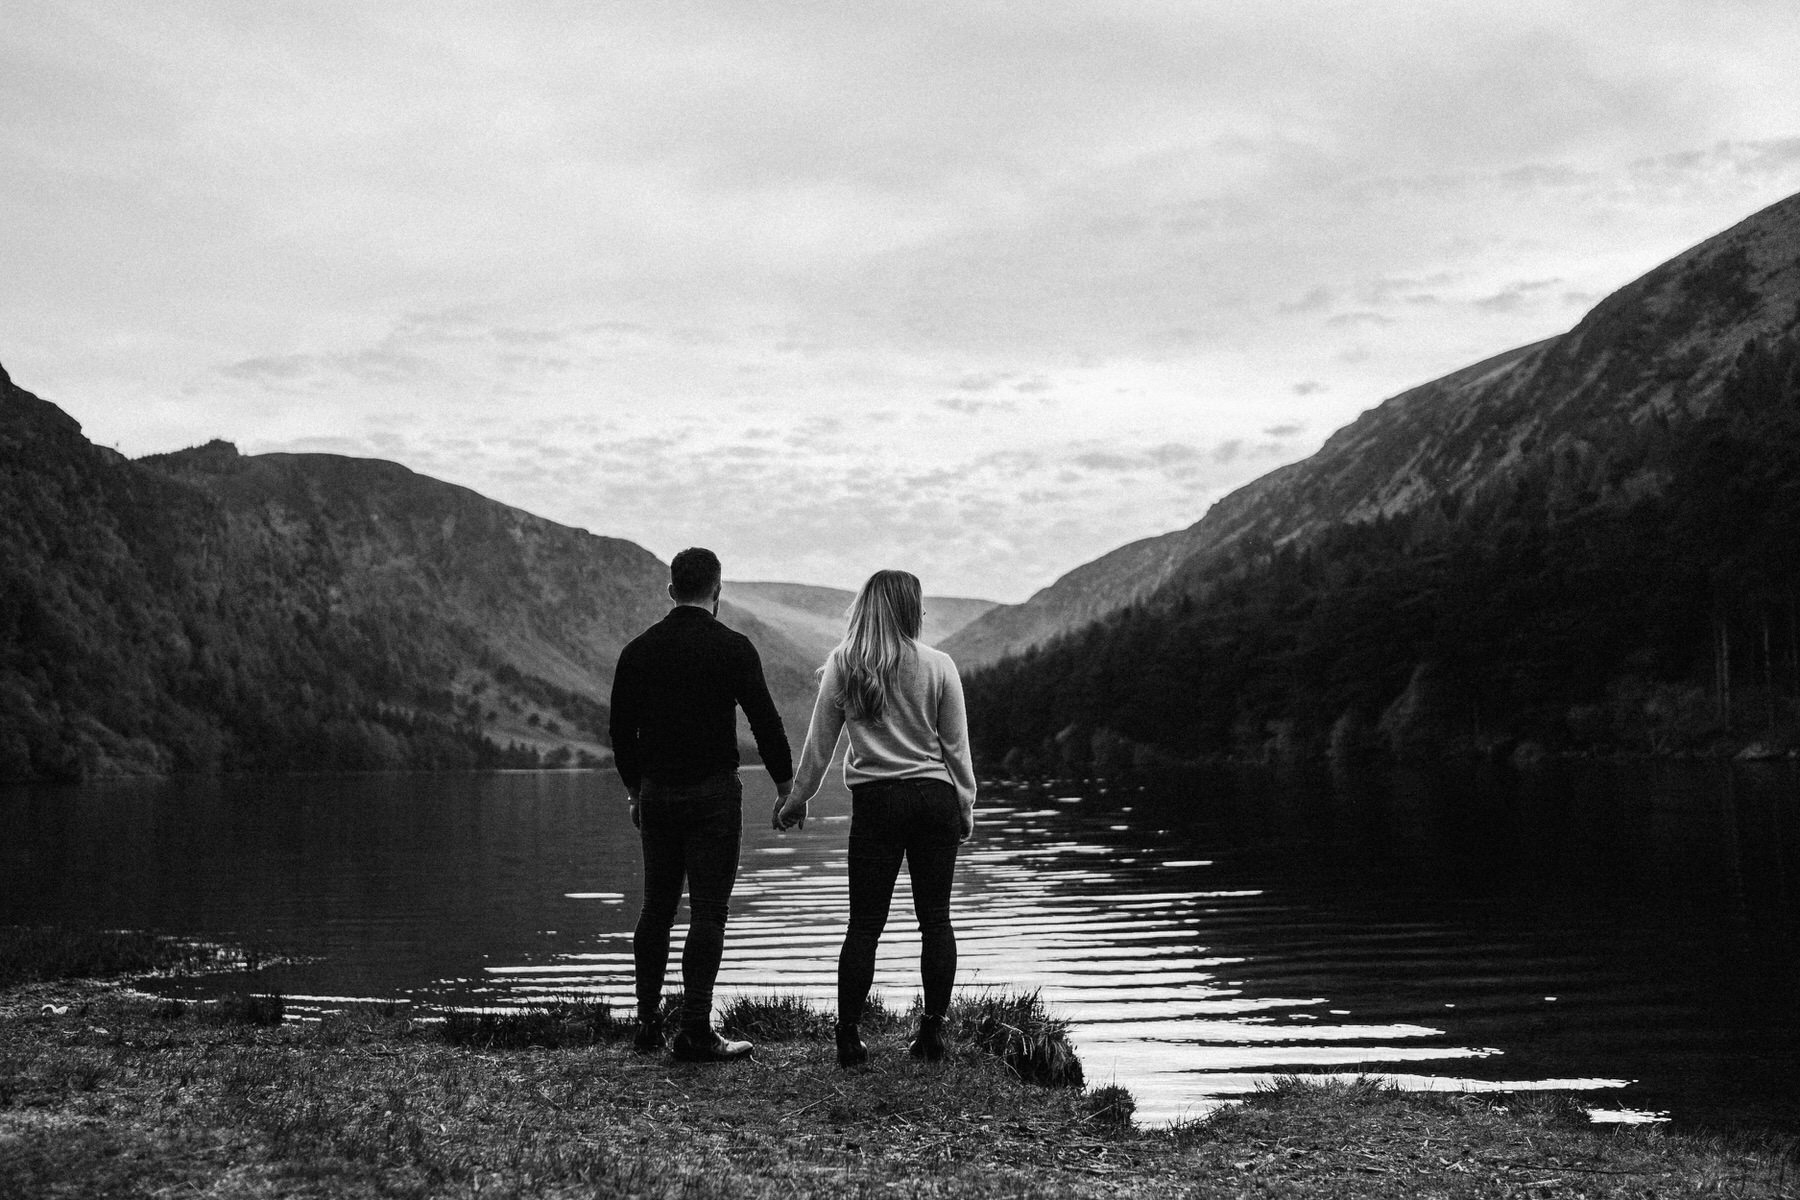 couple holding hands looking out over a lake